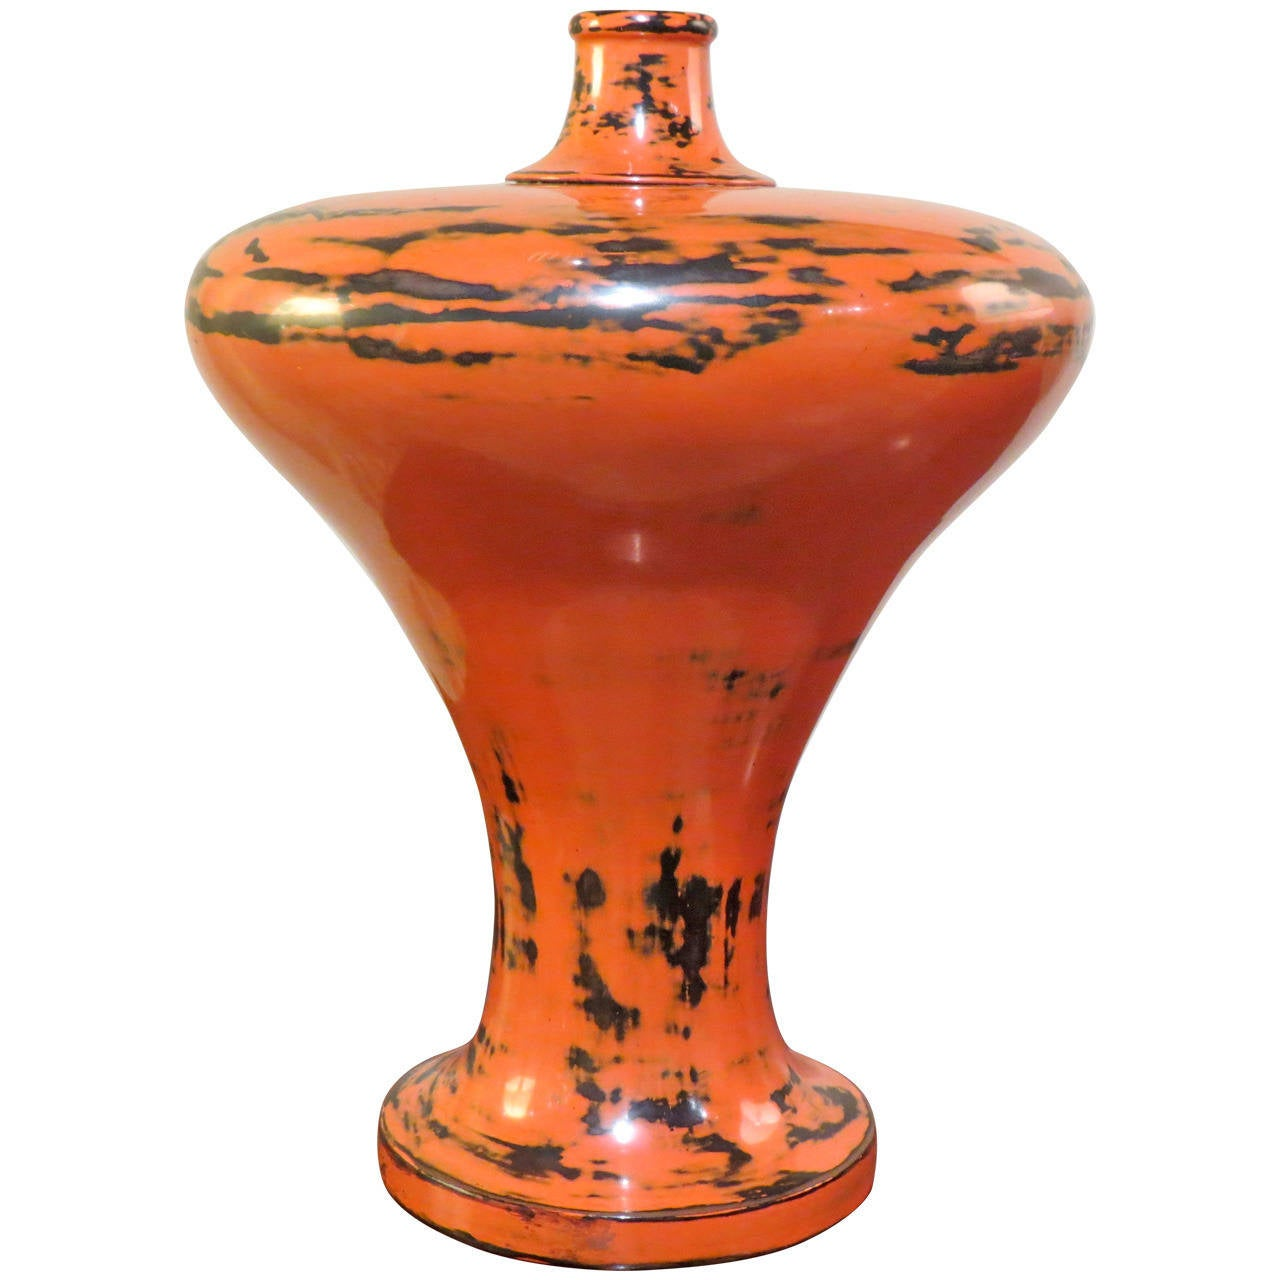 Japanese, 19th Century Lacquer Vase For Sale